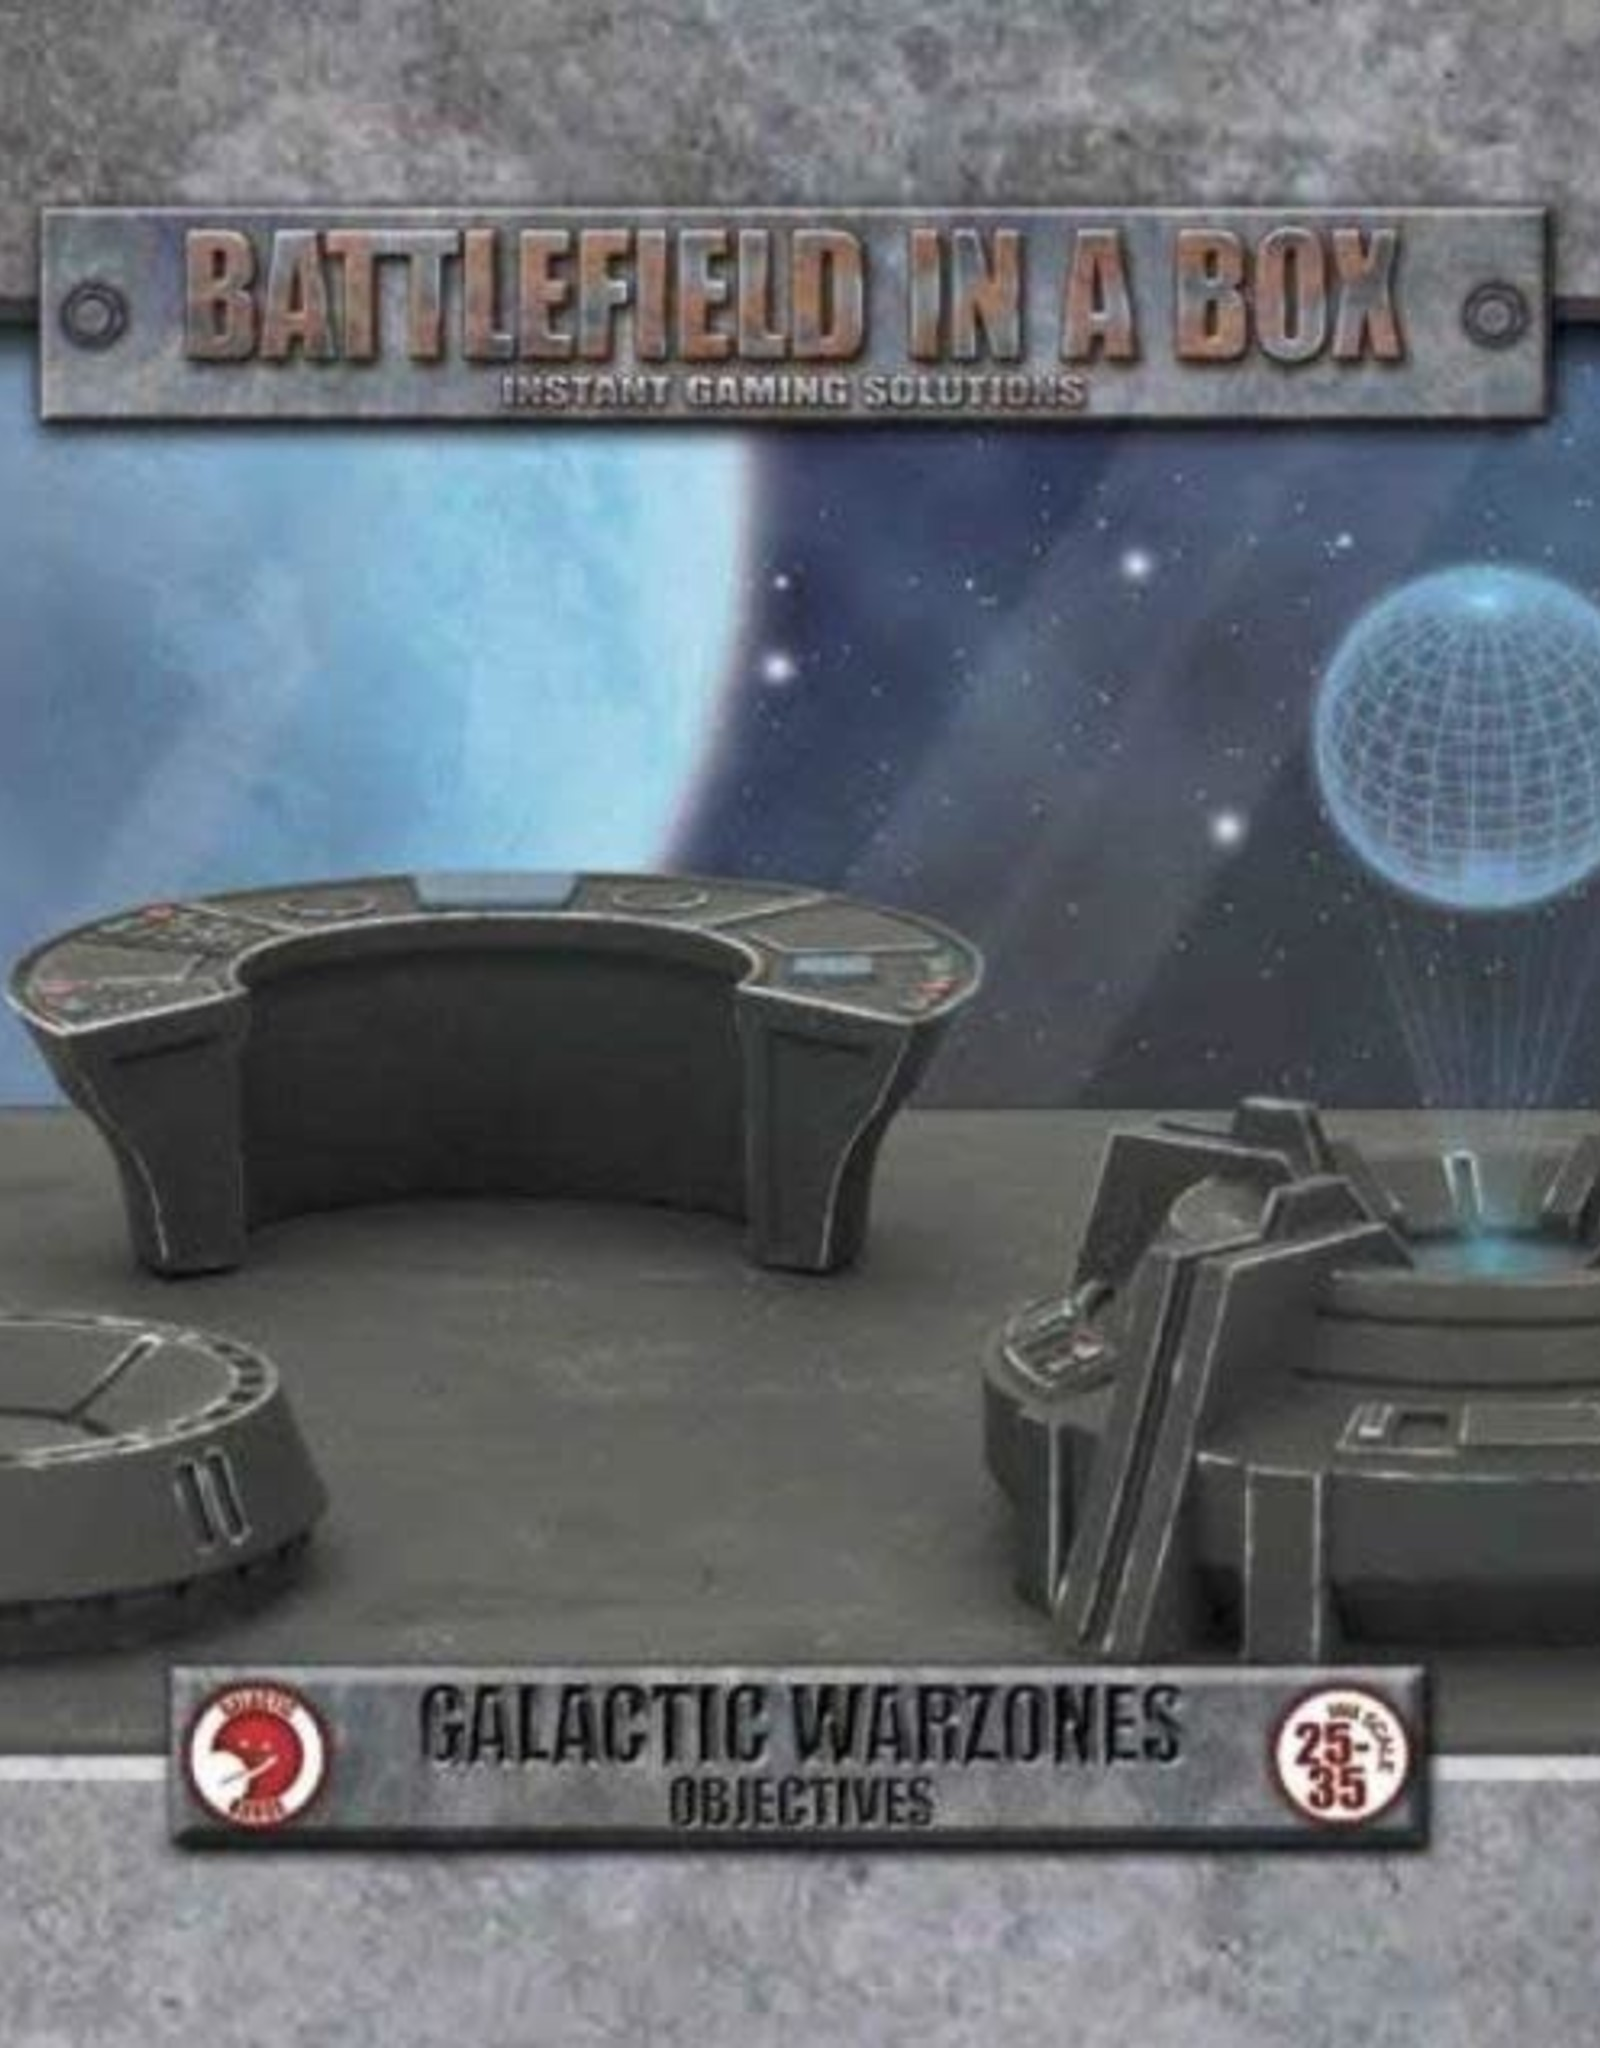 Gale Force 9 Battlefields in a Box Galactic Warzones Objectives